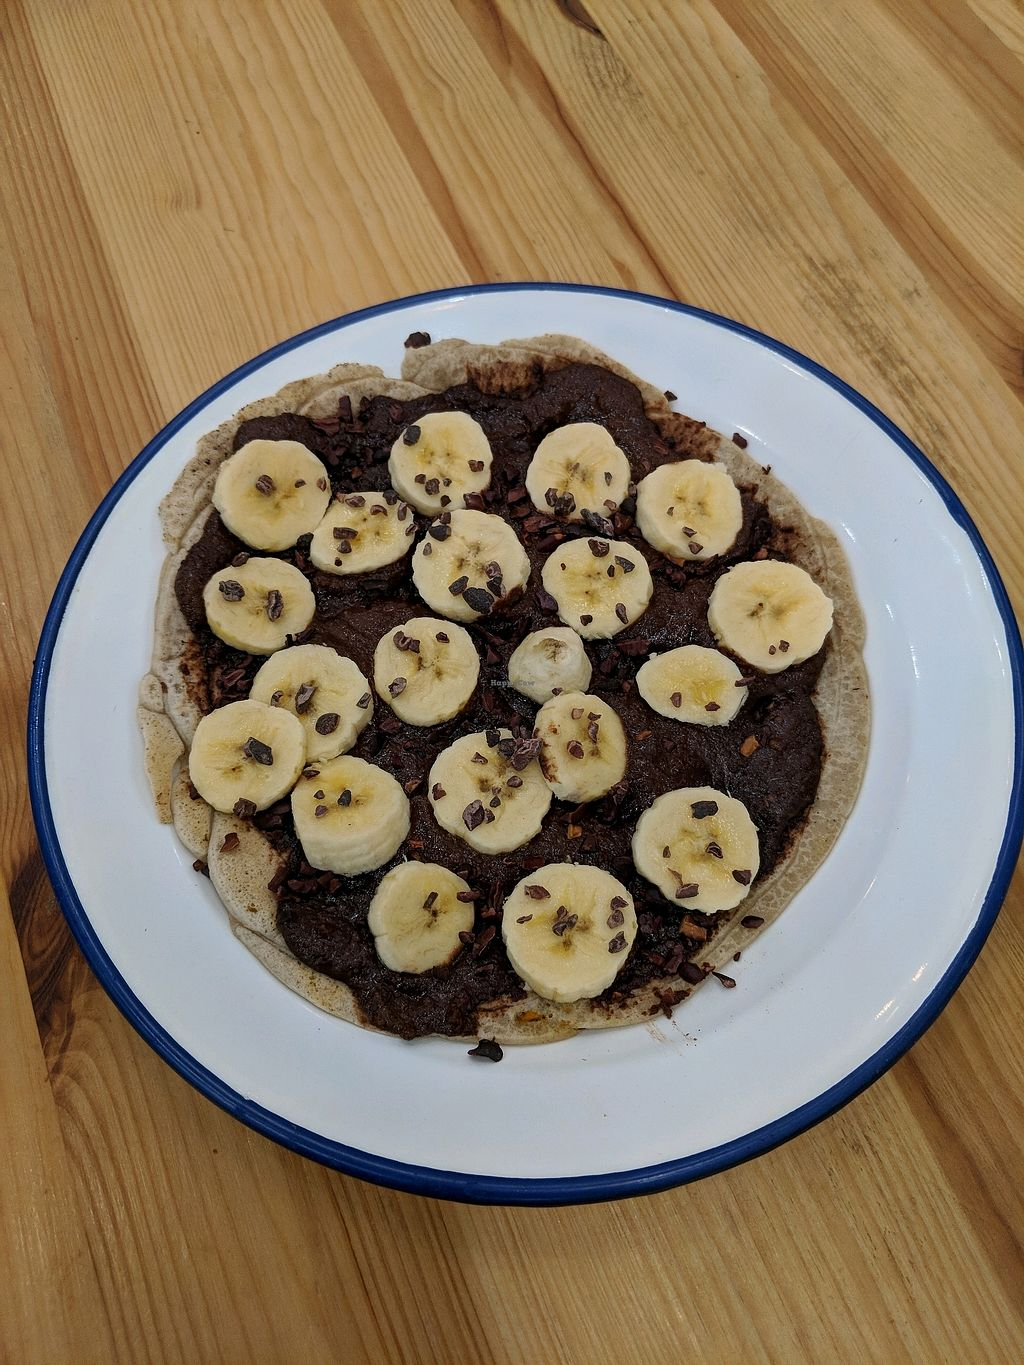 """Photo of Vacka  by <a href=""""/members/profile/DanielReynolds"""">DanielReynolds</a> <br/>banana and chocolate desert  <br/> March 17, 2018  - <a href='/contact/abuse/image/63179/372066'>Report</a>"""